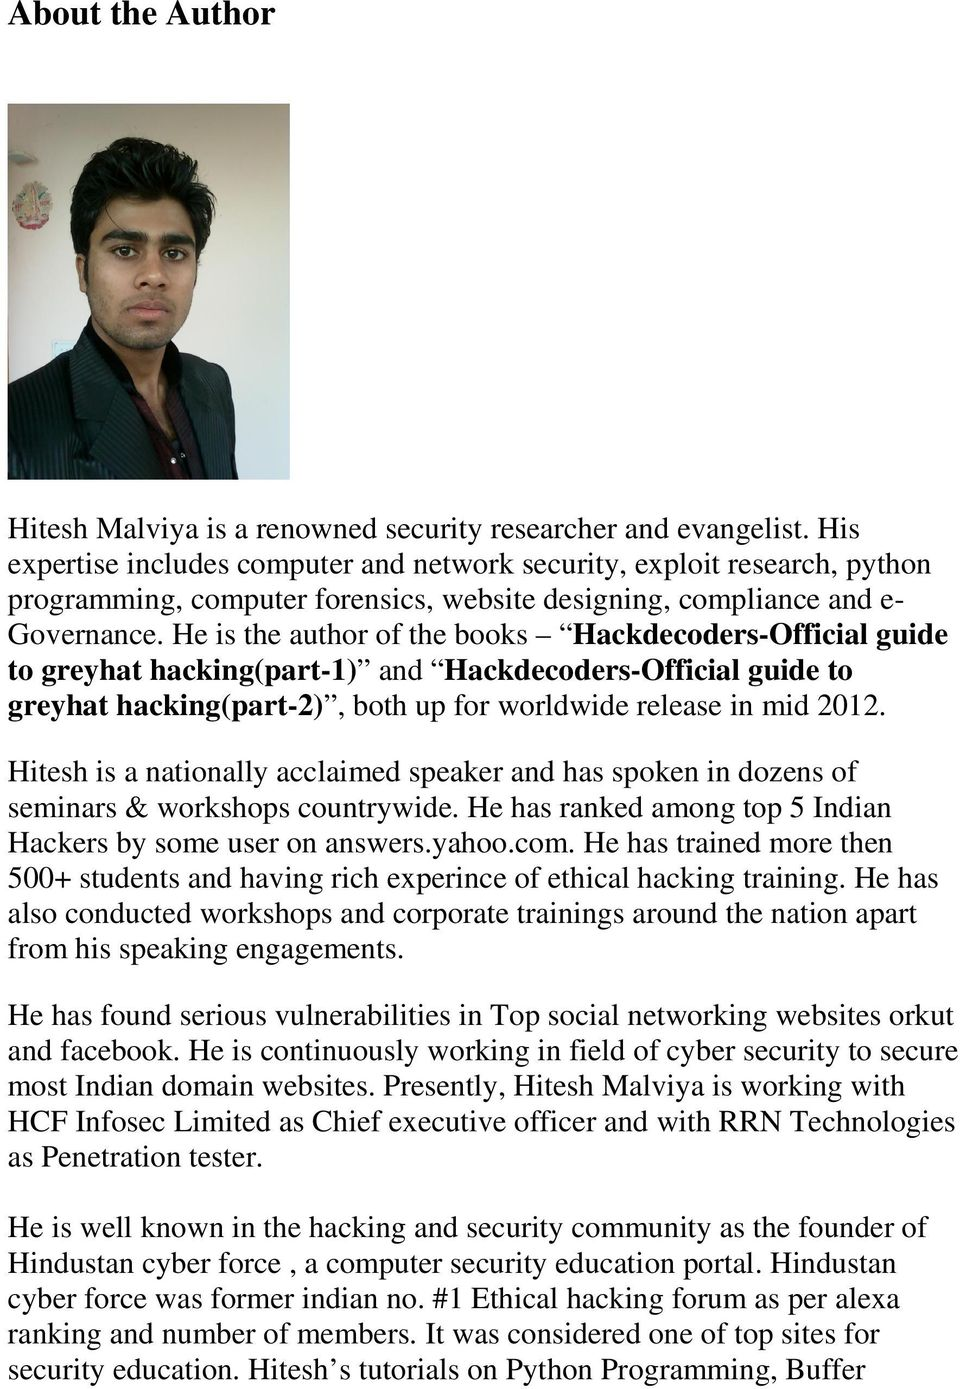 He is the author of the books Hackdecoders-Official guide to greyhat hacking(part-1) and Hackdecoders-Official guide to greyhat hacking(part-2), both up for worldwide release in mid 2012.